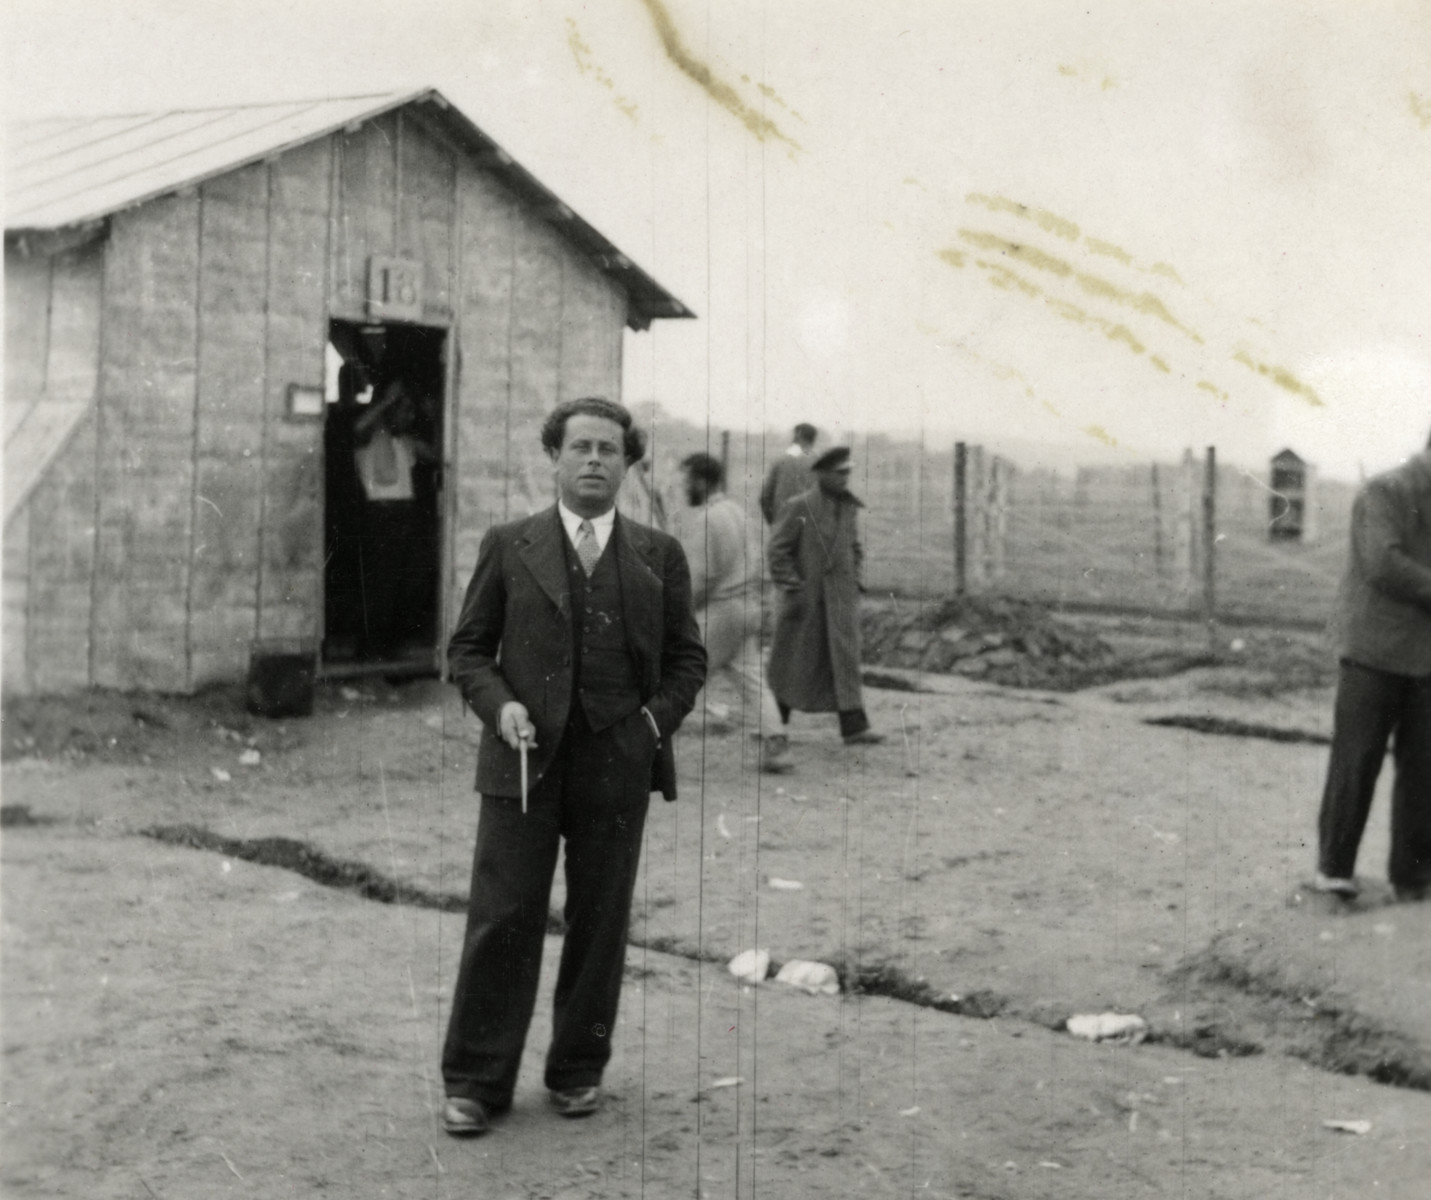 Rabbi Victor Tulman poses in front of a barracks in Gurs while Spanish internees work in the background.  This photograph was taken in the early days of the camp while it was still under construction.